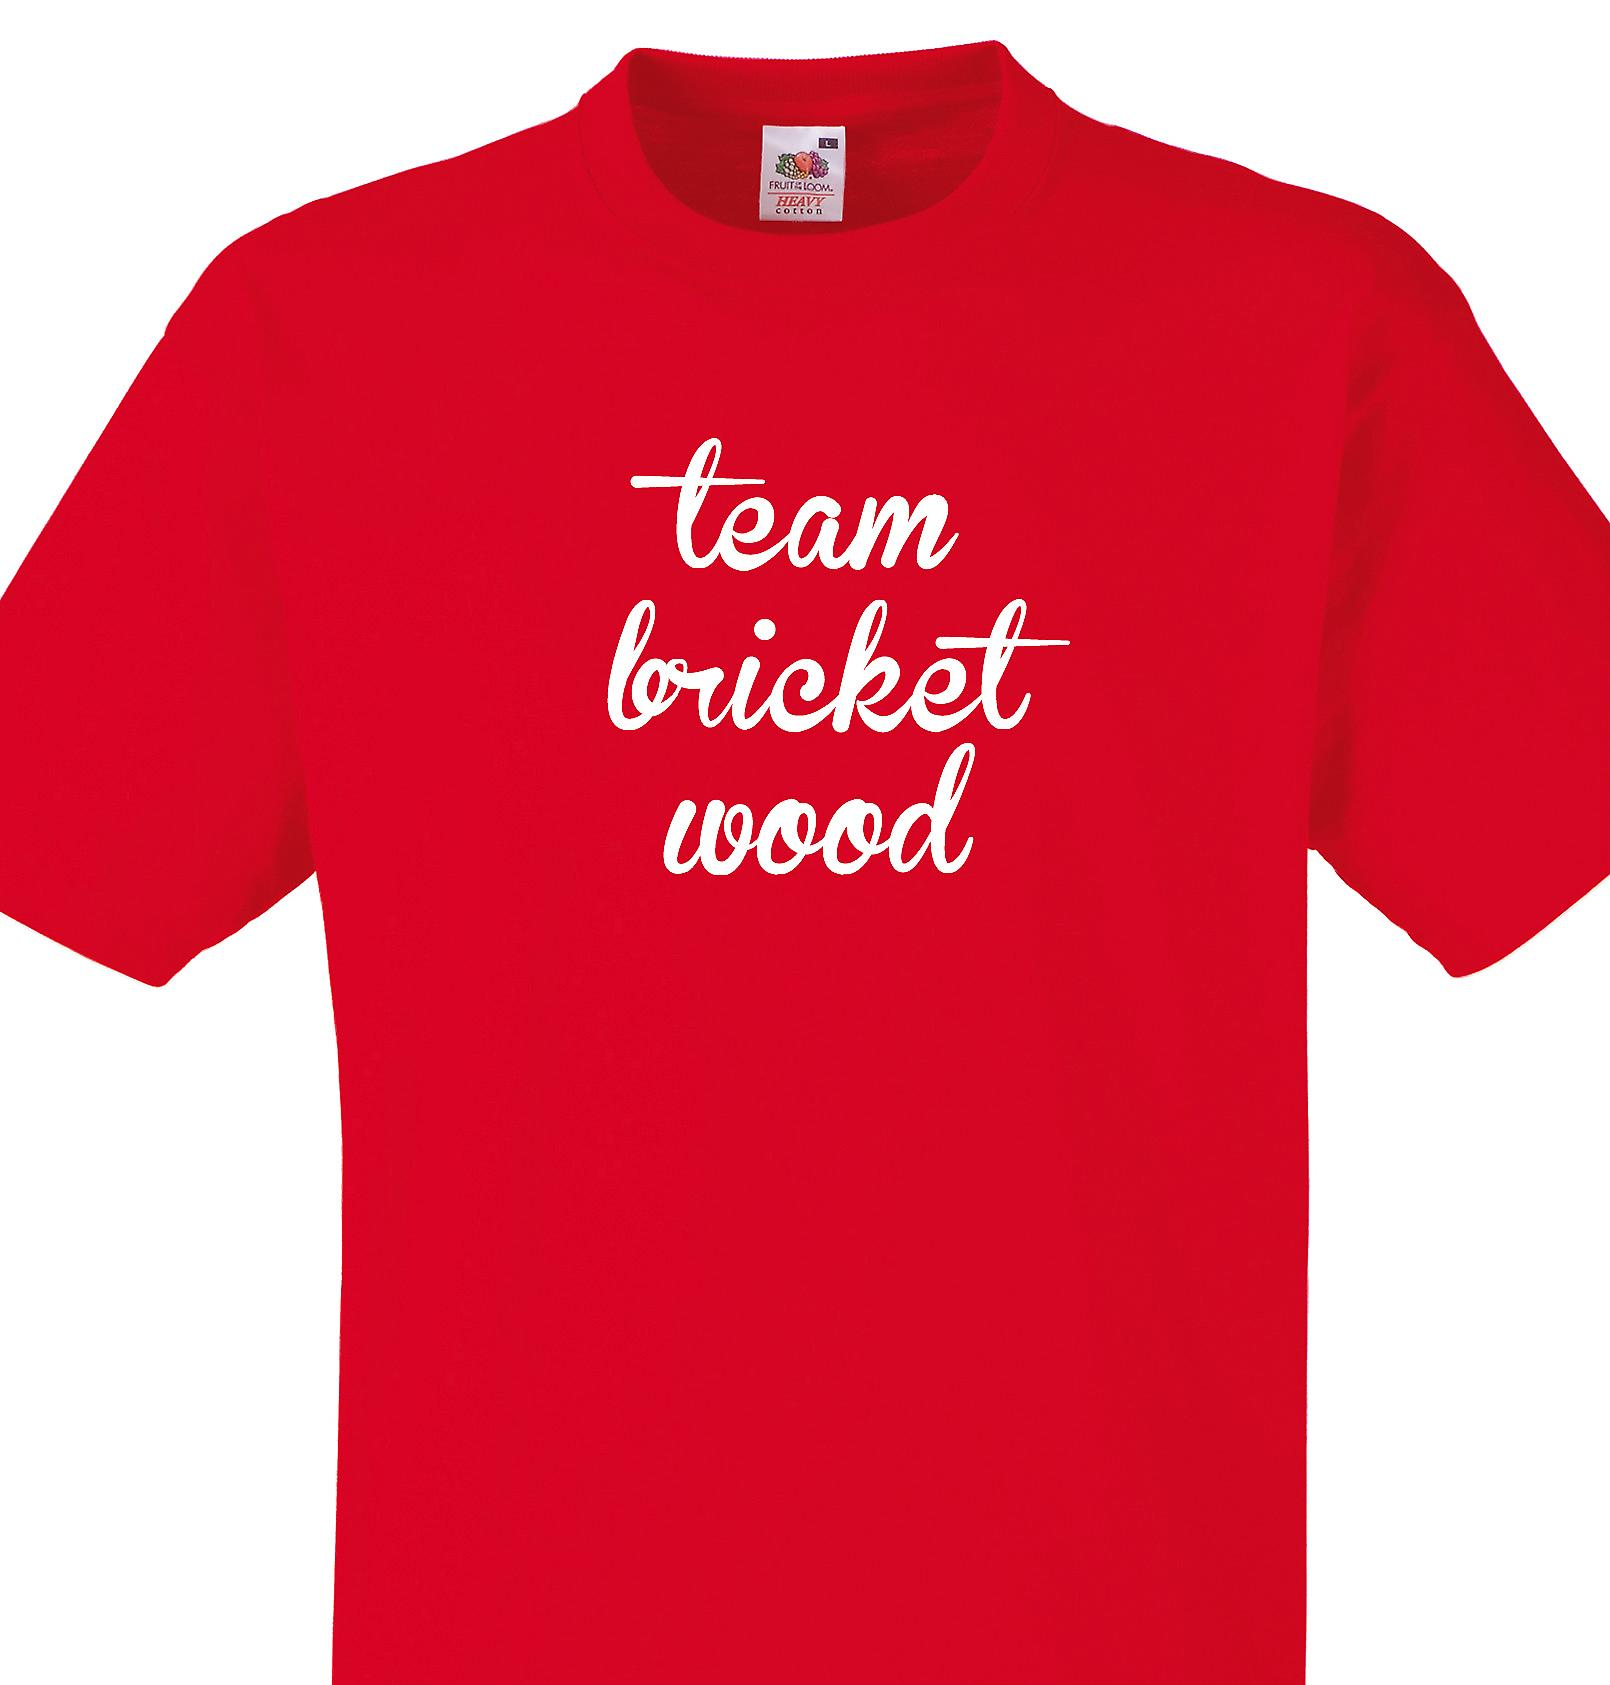 Team Bricket wood Red T shirt